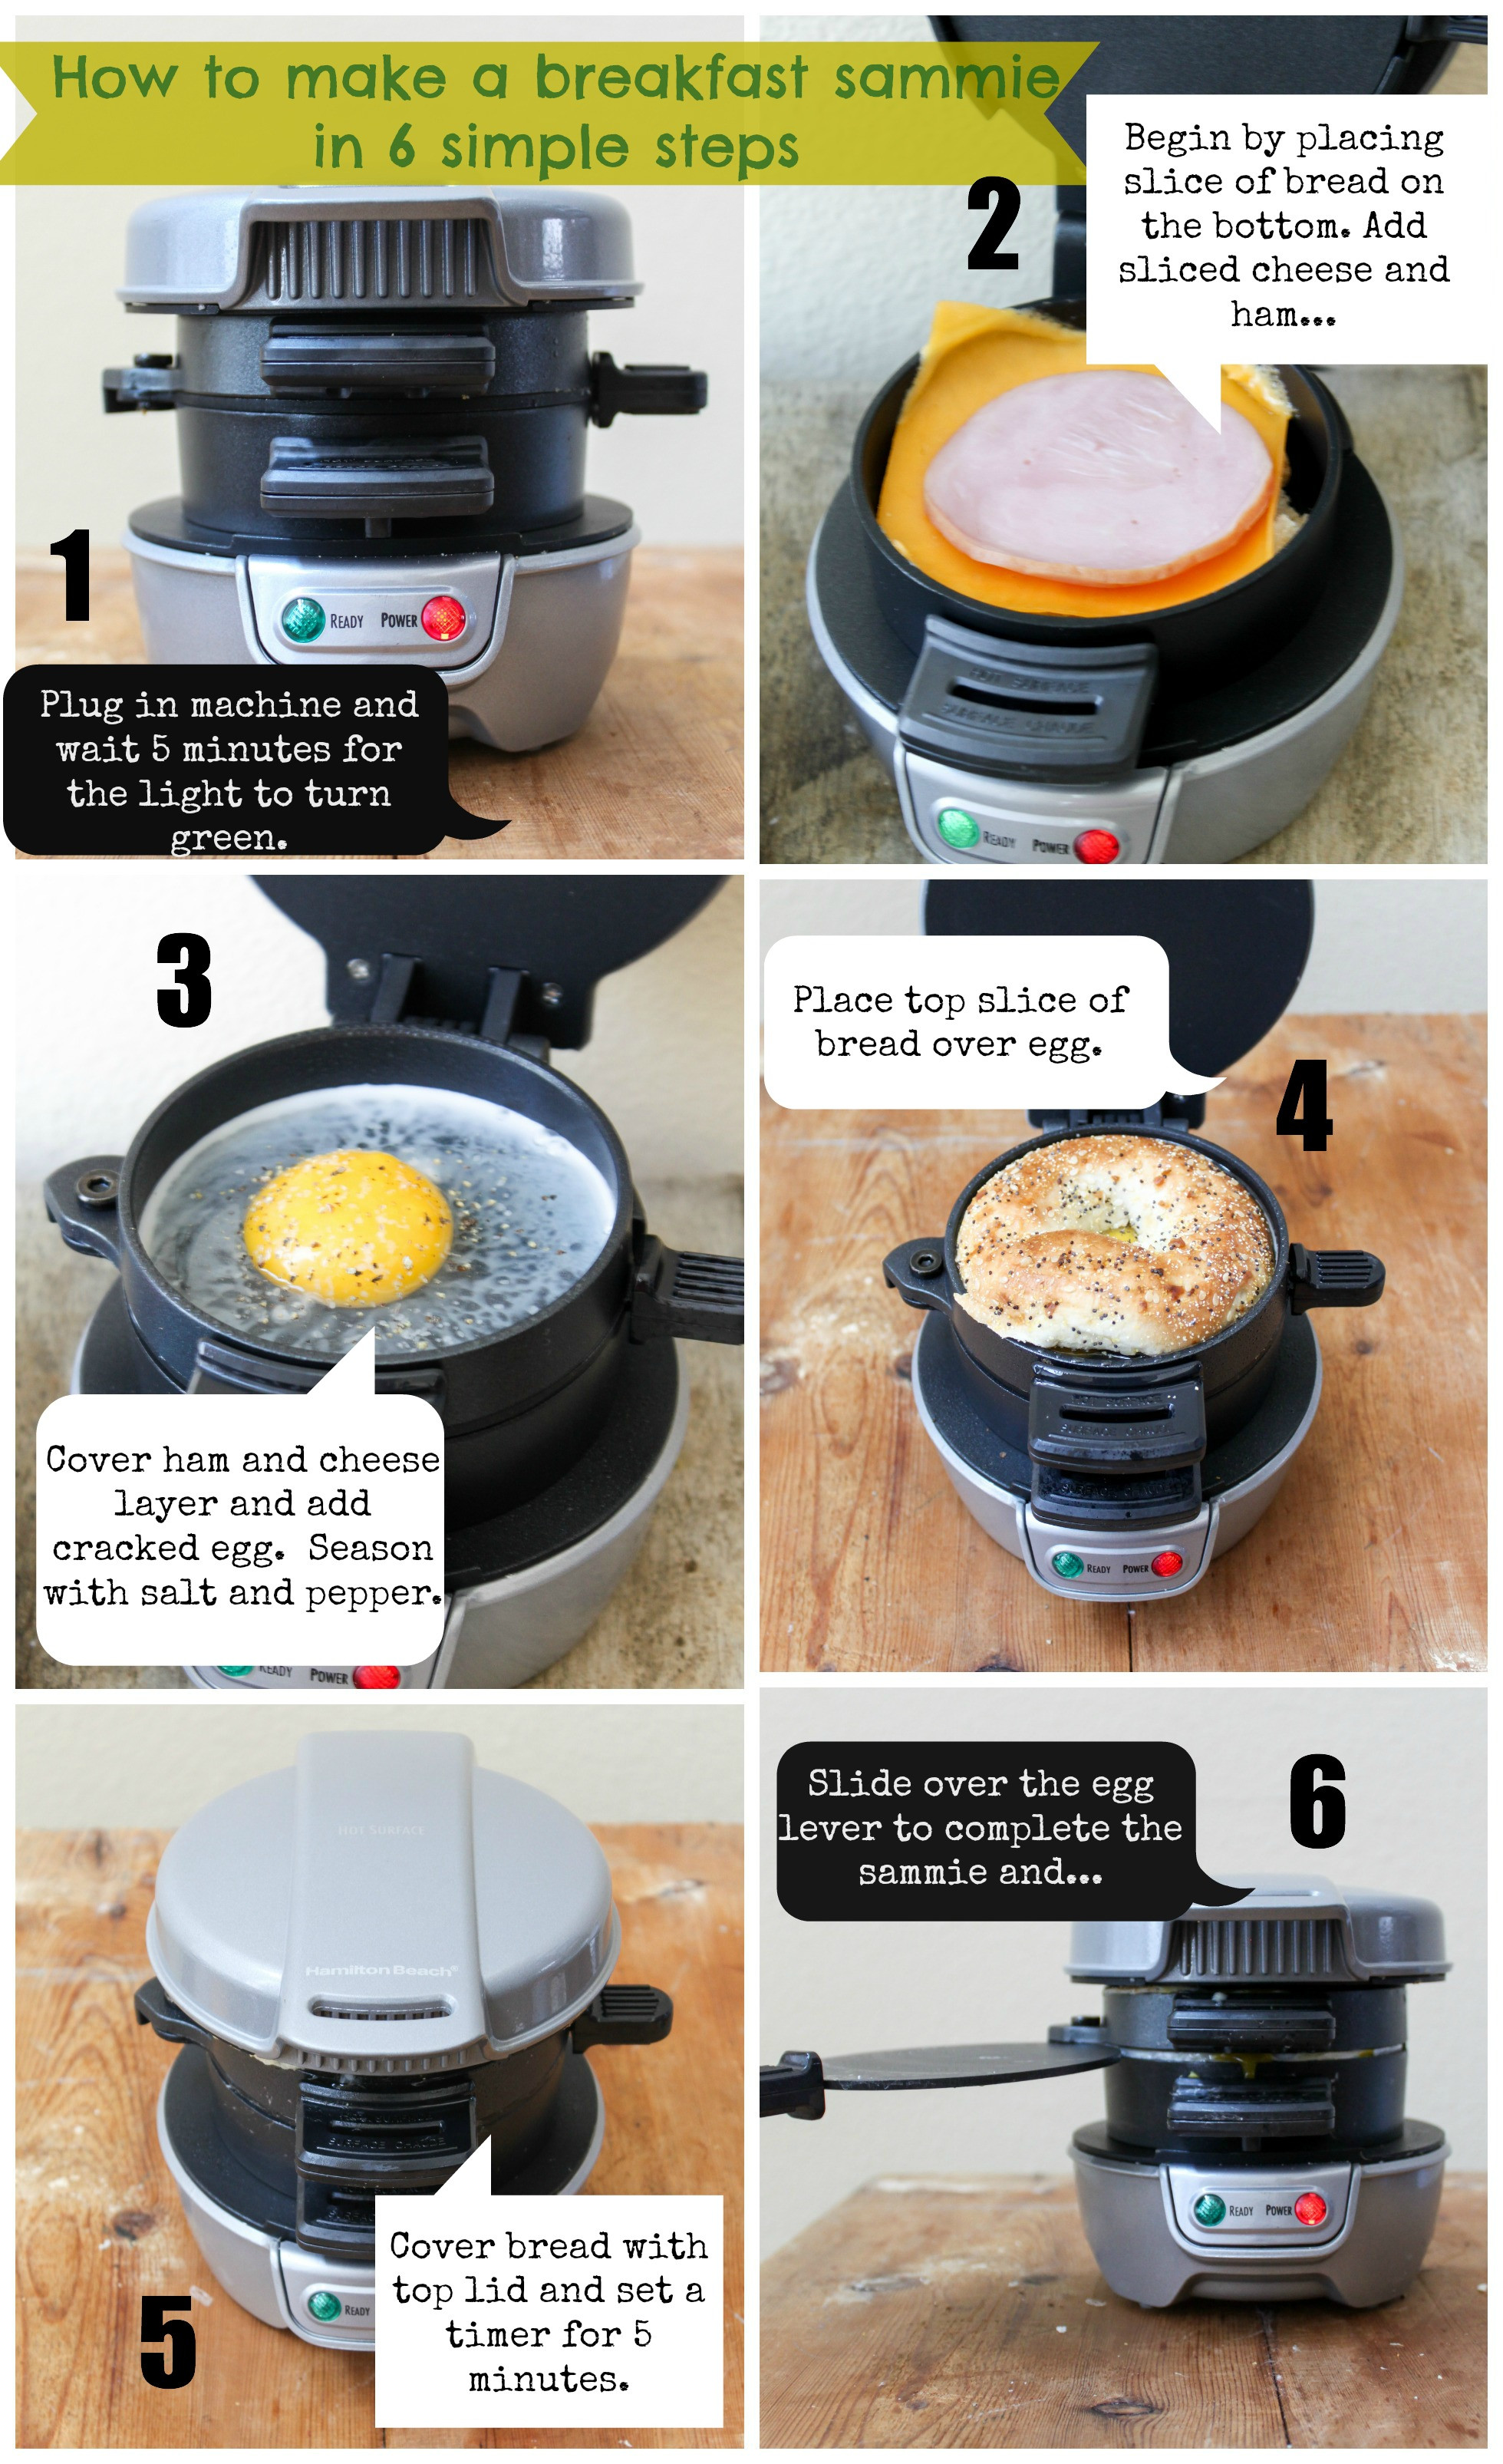 Hamilton Beach Breakfast Sandwich Maker Recipes  My First Giveaway Hamilton Beach Breakfast Sandwich Maker